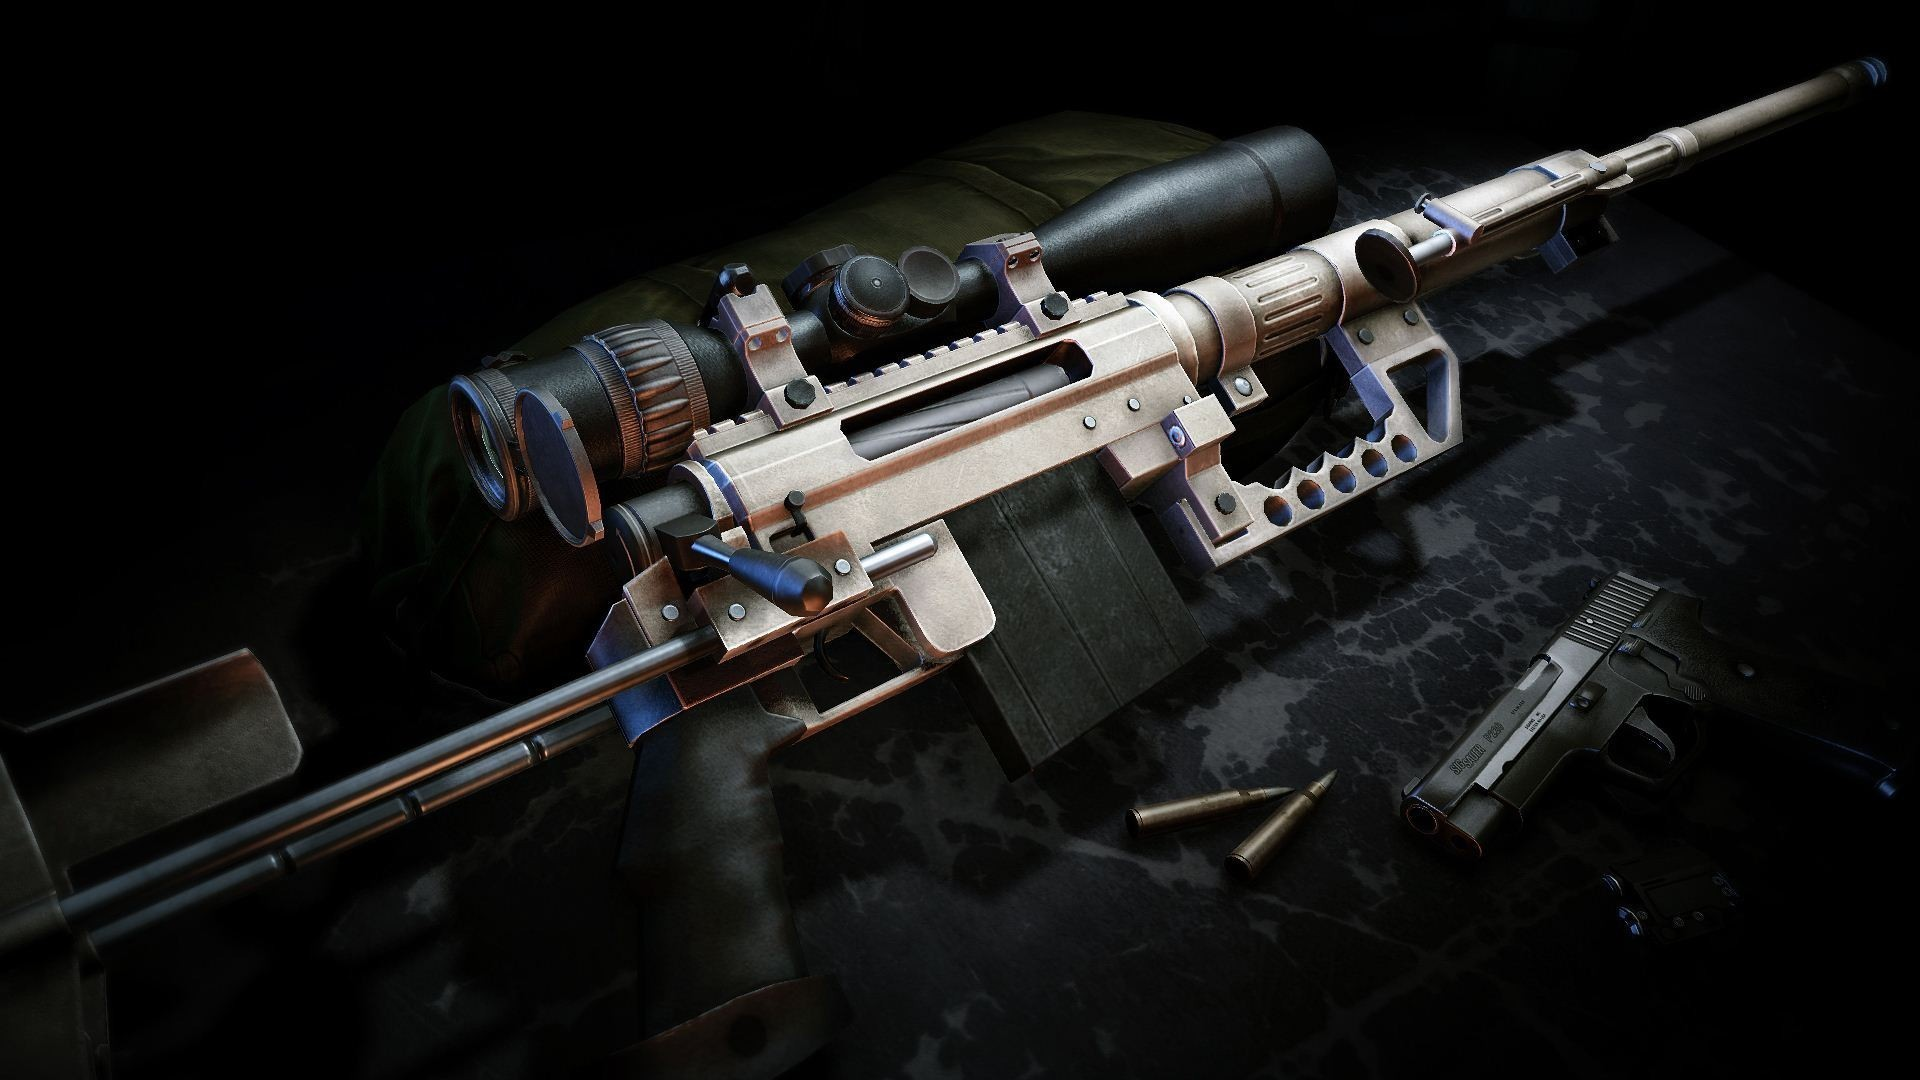 Sniper Rifle Wallpaper Hd 79 Images